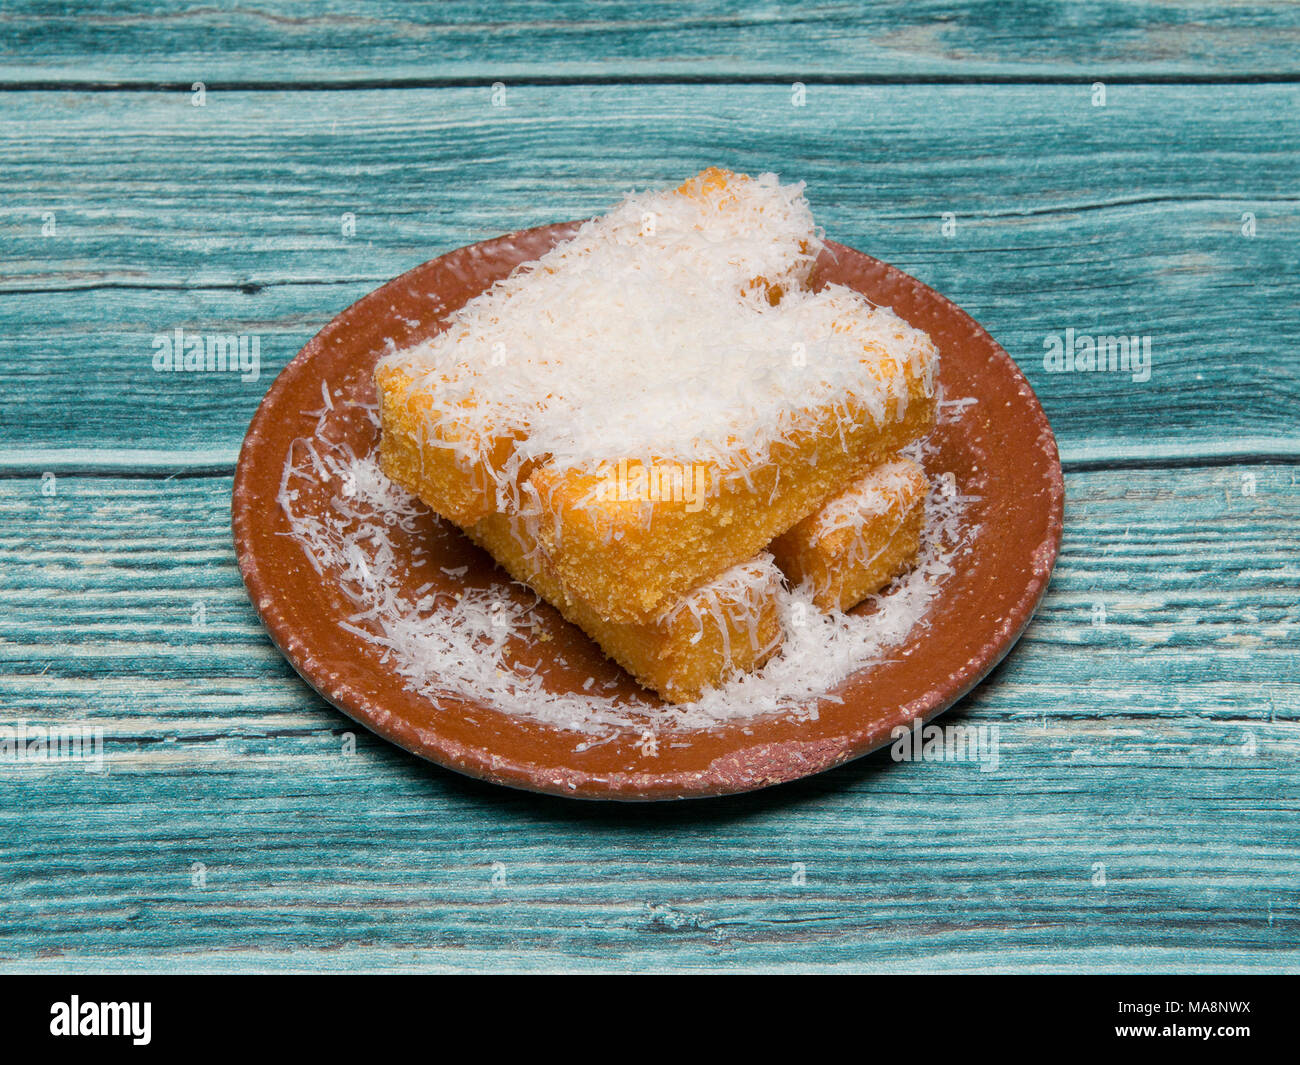 Fast Foods Stock Photos & Fast Foods Stock Images - Alamy